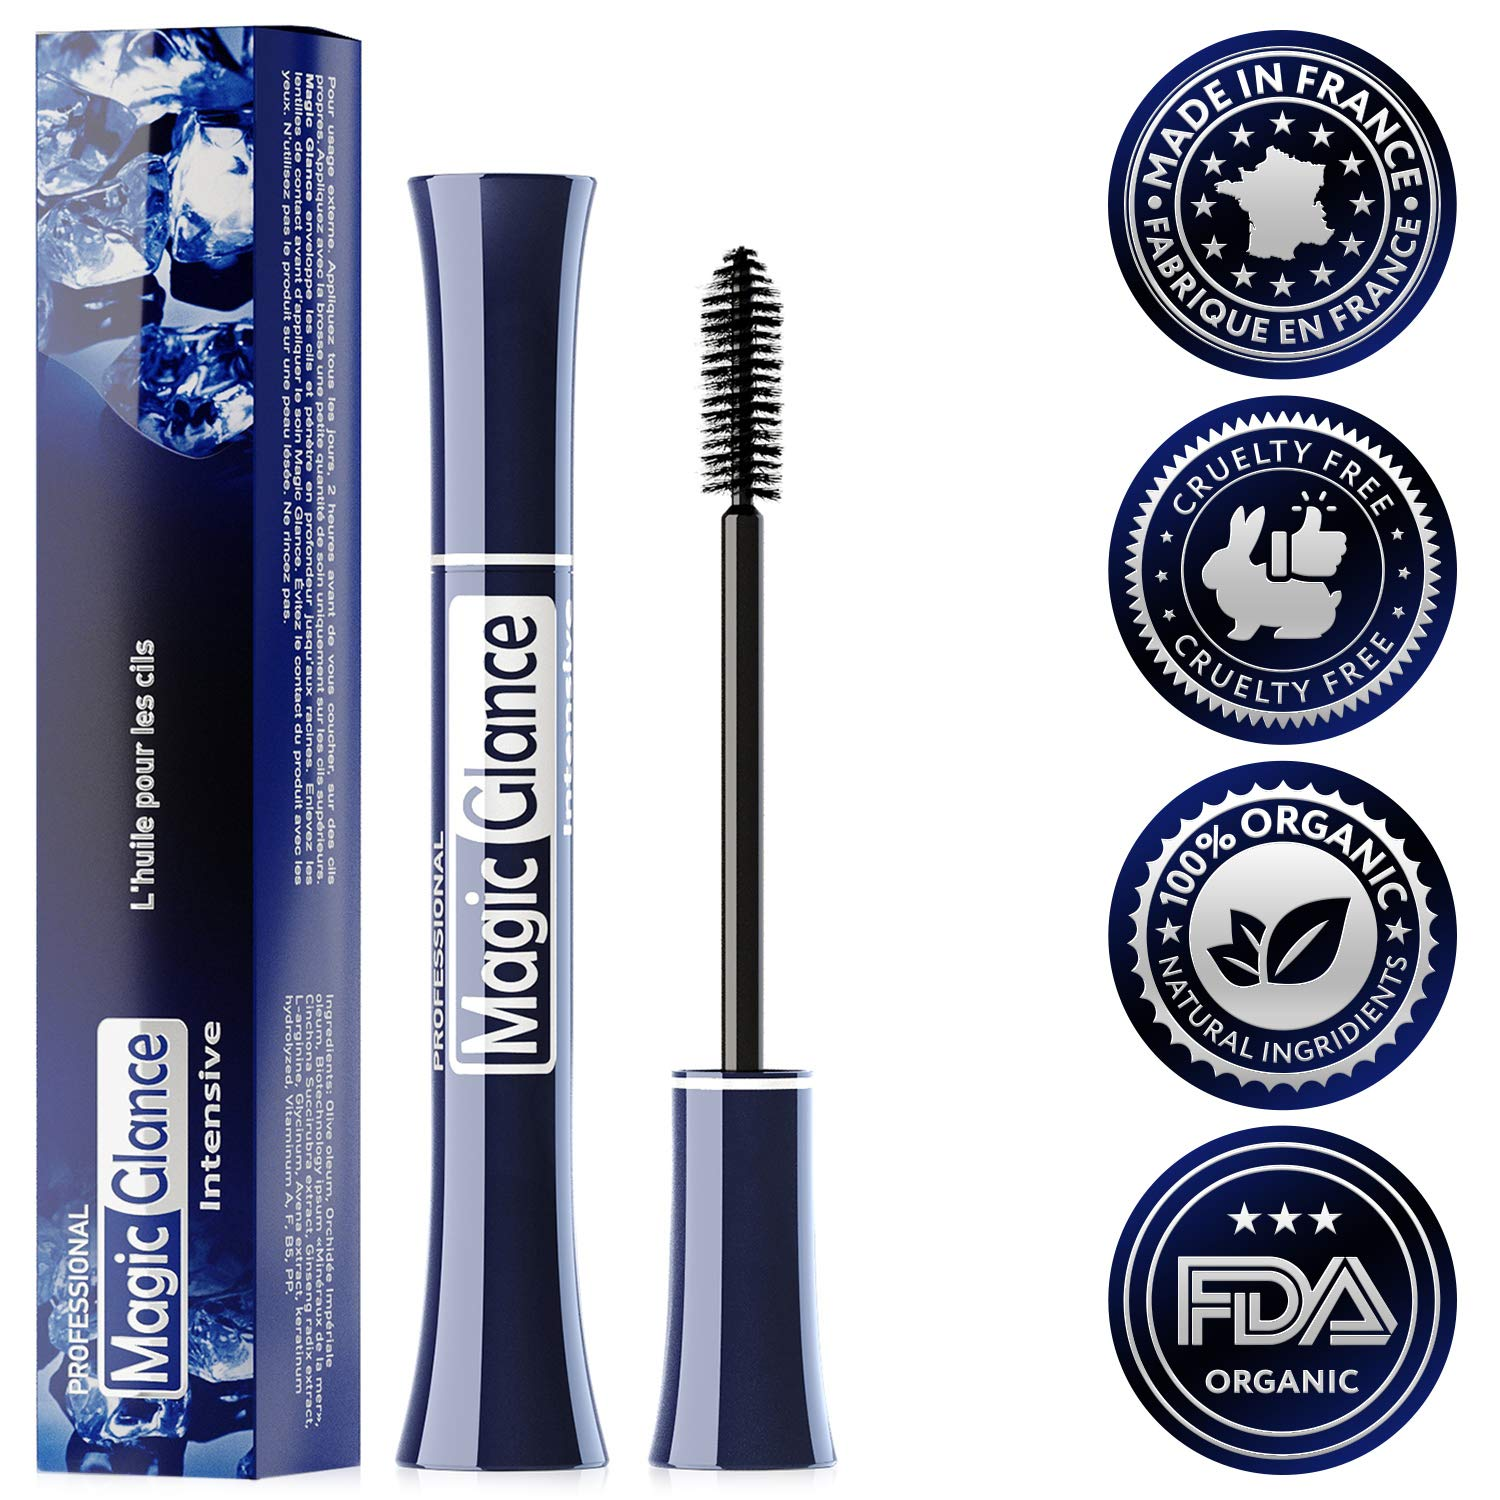 27728b2b9d6 Amazon.com: Magic Glance - Eyelash Growth Serum - Lash Boost Enhancer For  Longer Lashes And Eyebrows - Fast Results In 10 Days: Beauty